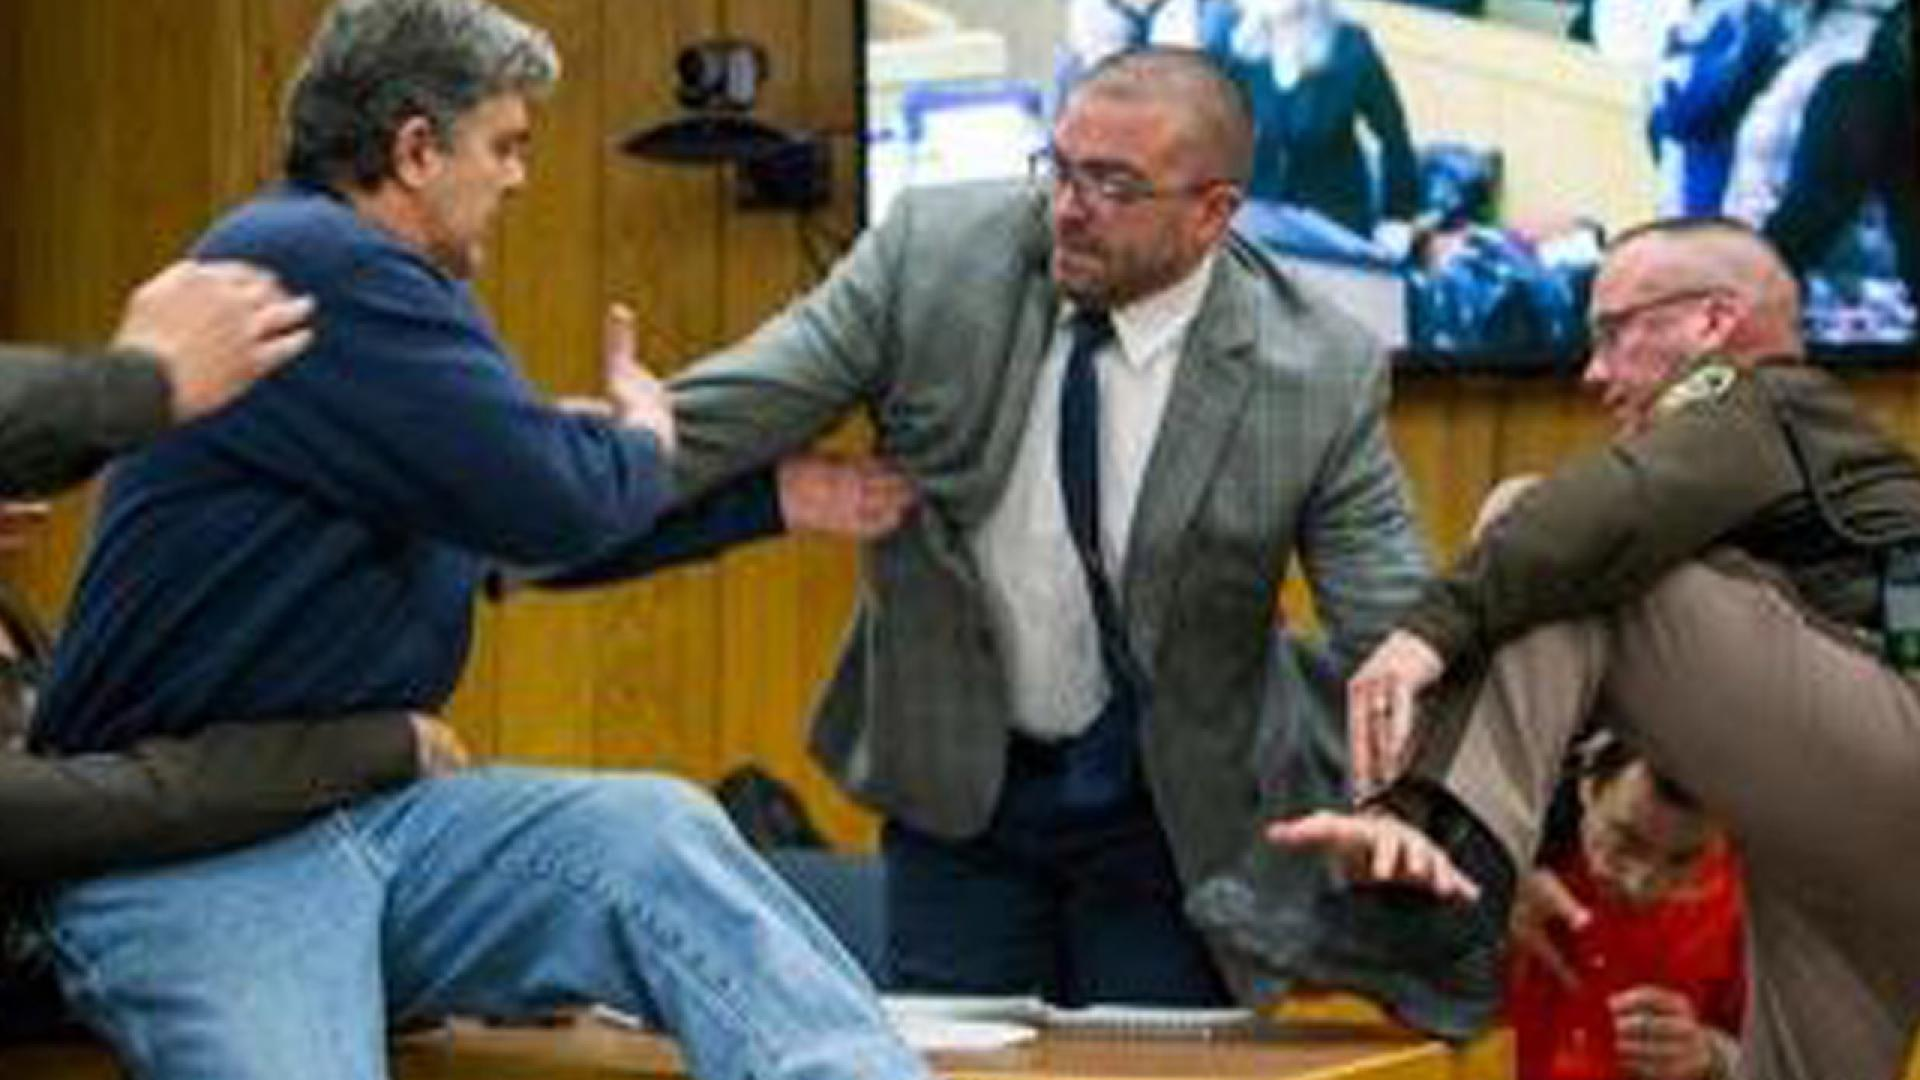 Randall Margraves lunged at Larry Nassar in court last week.